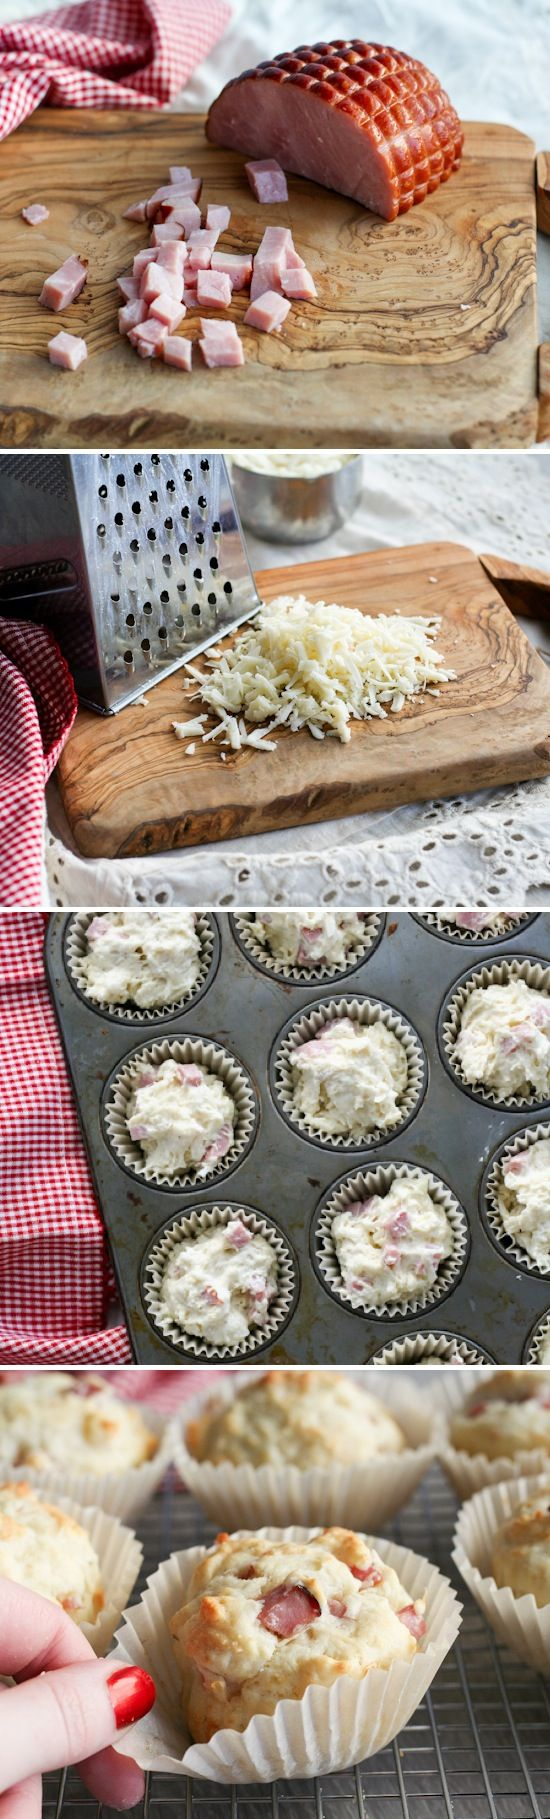 Stephanie's Ham/Preheat the oven to 375 and line two muffin tins with papers  1. Stir together the flour, sugar, baking powder, baking soda, salt, and thyme in a medium bowl.  2. In a separate bowl combine the milk, egg, and melted butter.  3. Stir milk mixture into the flour mixture until barely combined. Fold in the ham and swiss. Divide the batter up between 17 muffin cups.  4. Bake at 375 for 15-20 minutes. Mine were always done at 17 minutes but it will depend on your oven.